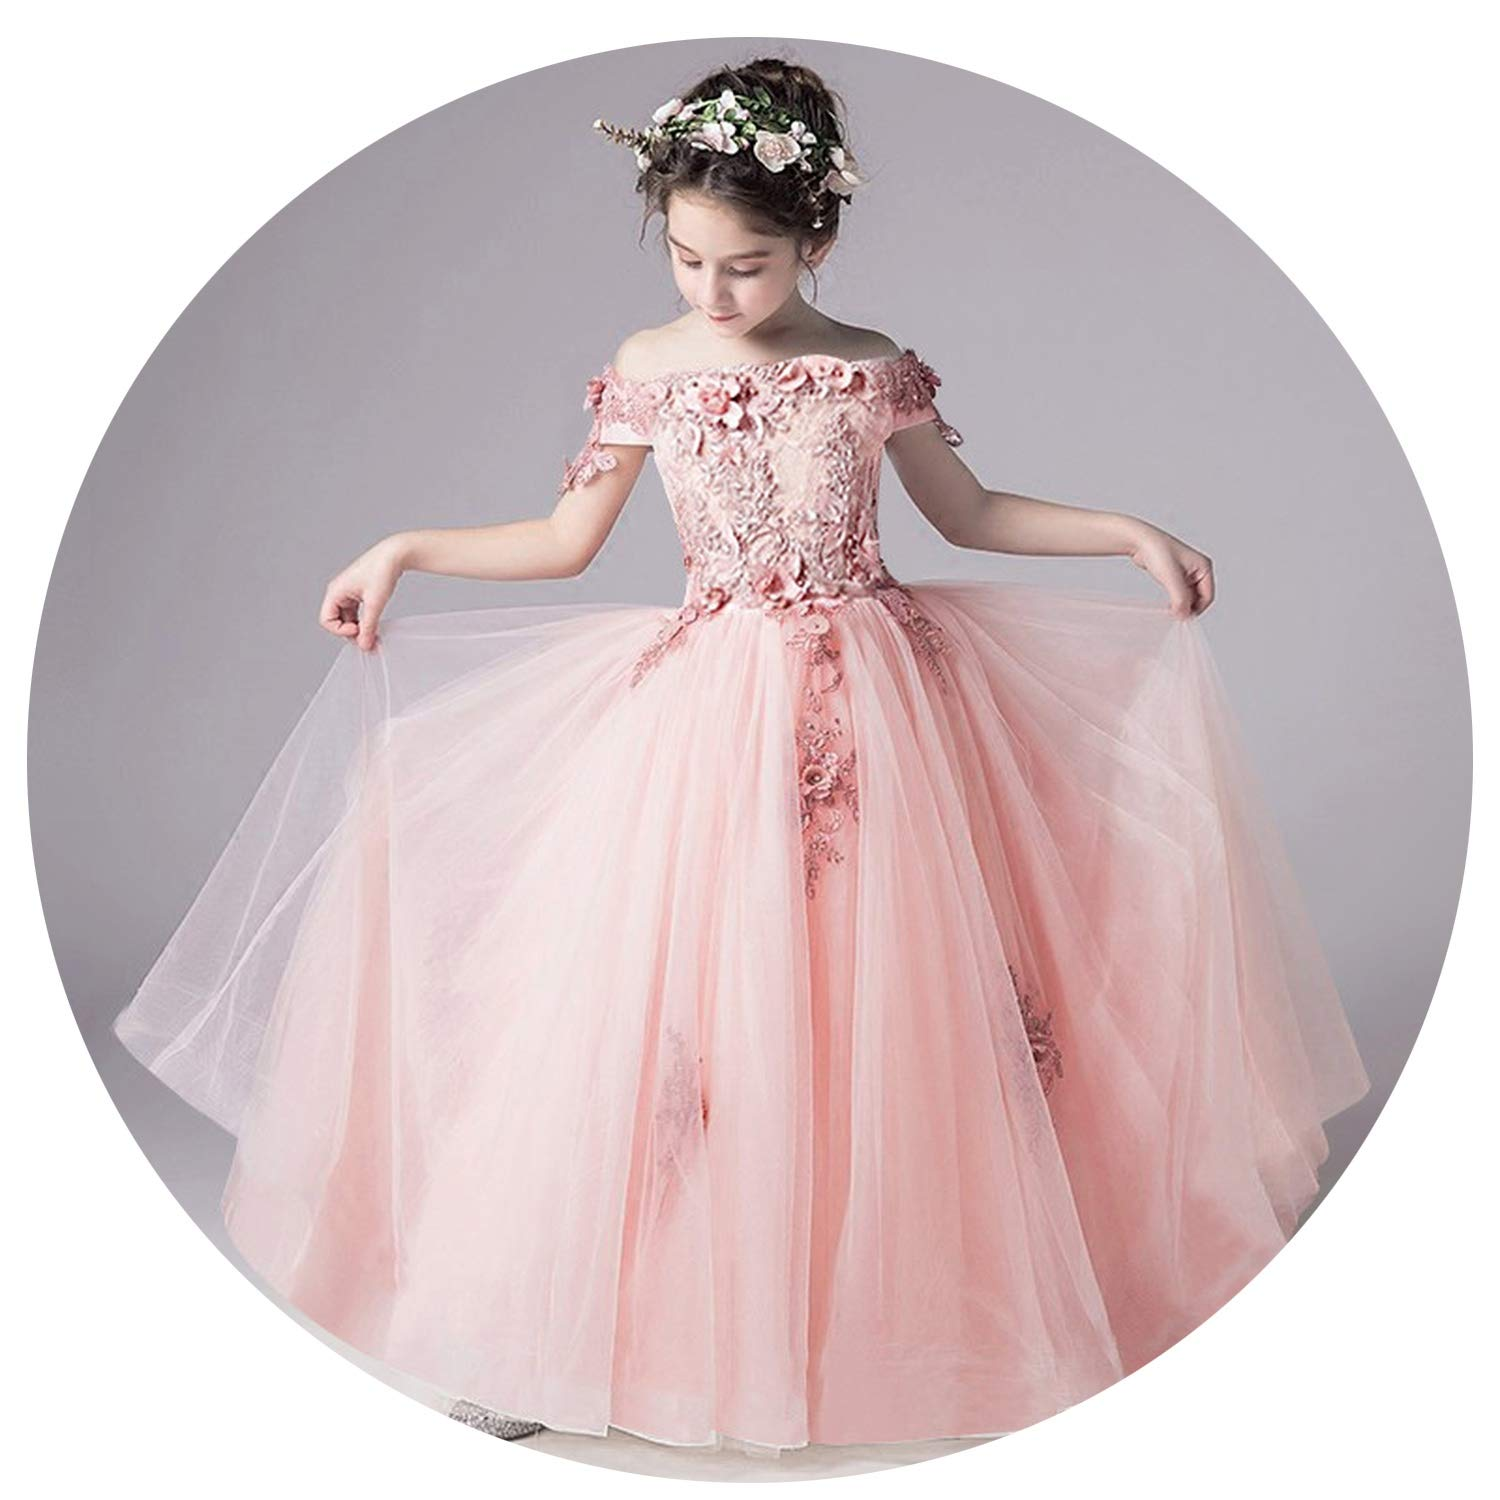 Tulle Lace Infant Pageant for Weddings and Party First Communion Dresses for Girls,as picture1,6